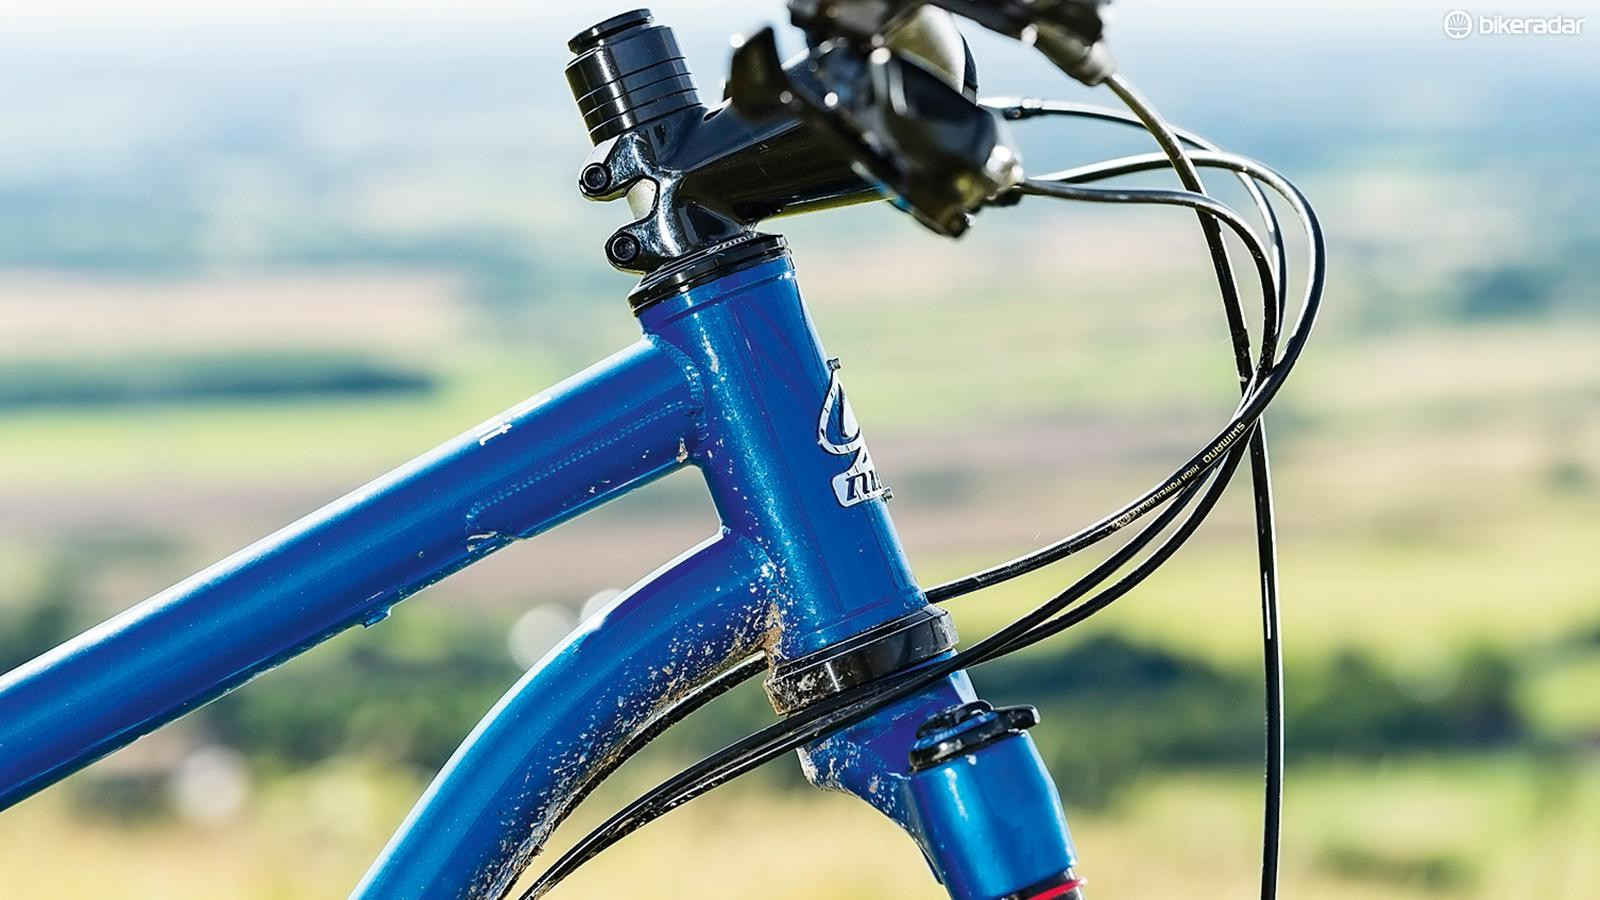 The double-butted (with identical wall thickness) and gusseted top and down tube are strong enough to handle up to a 140mm fork